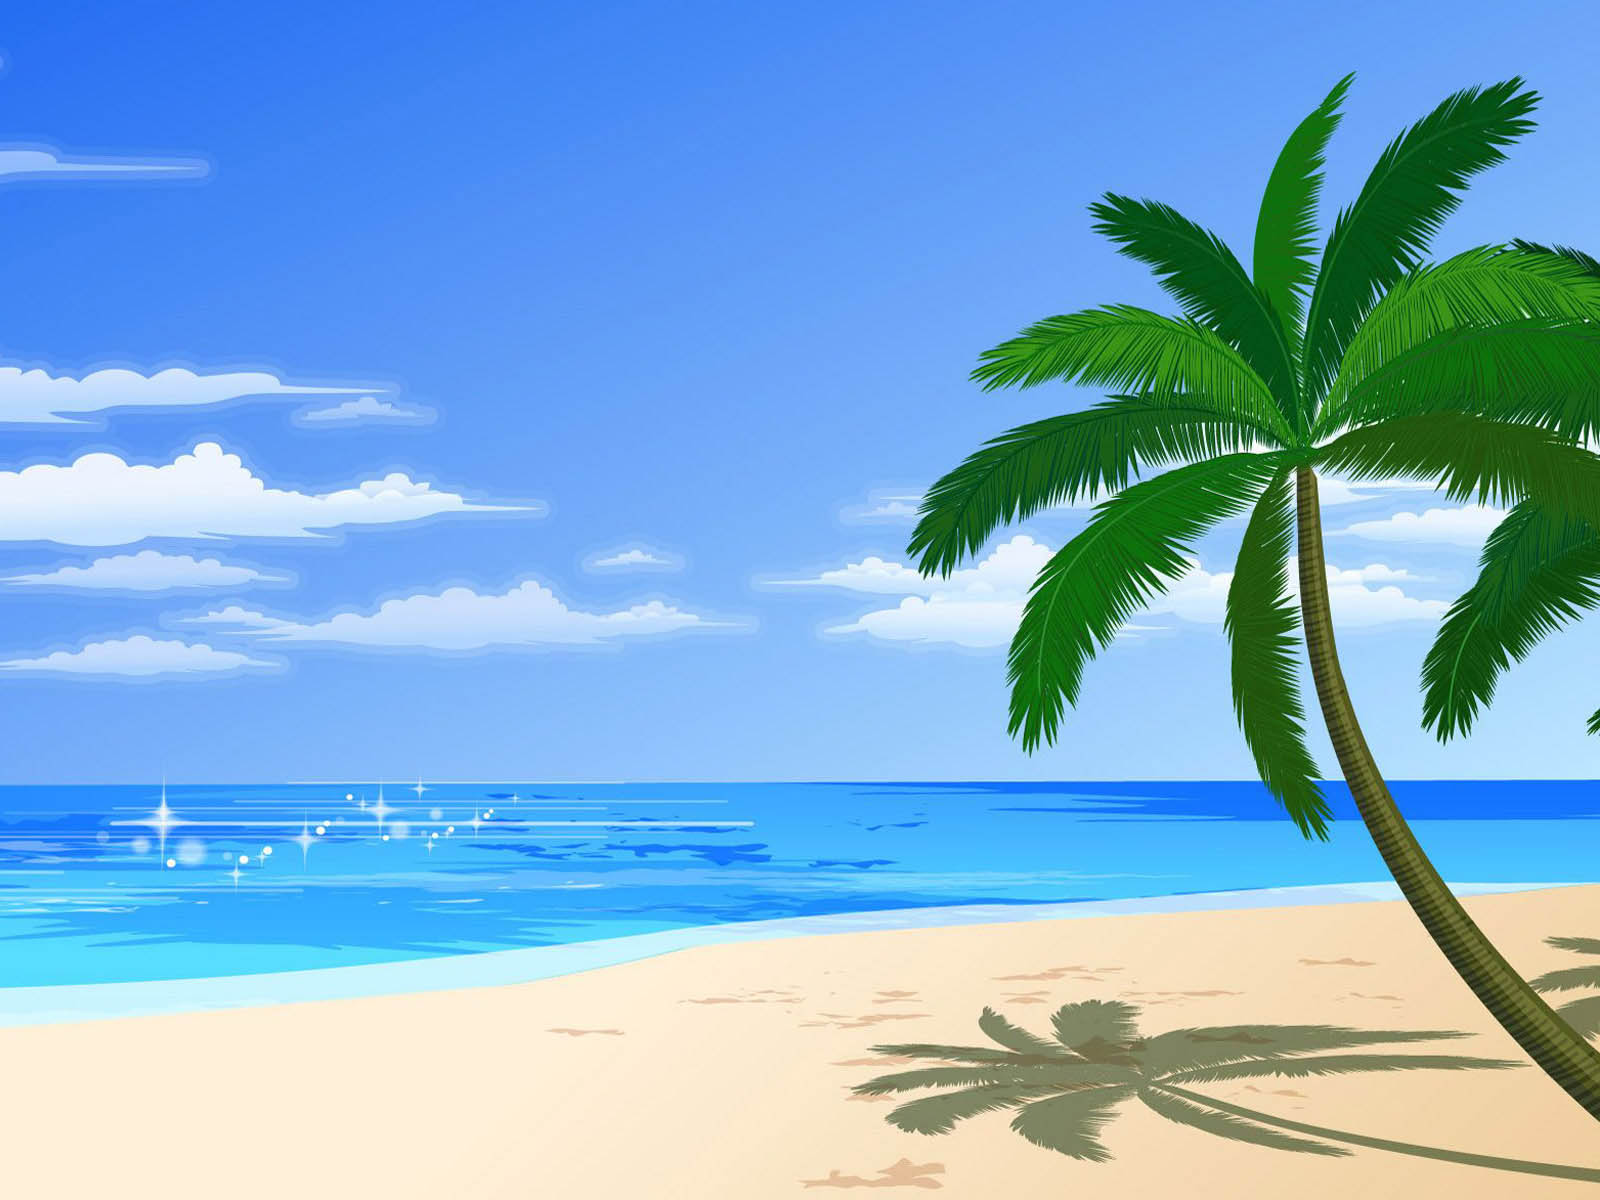 The Sea clipart beach background Download art clipart image hd